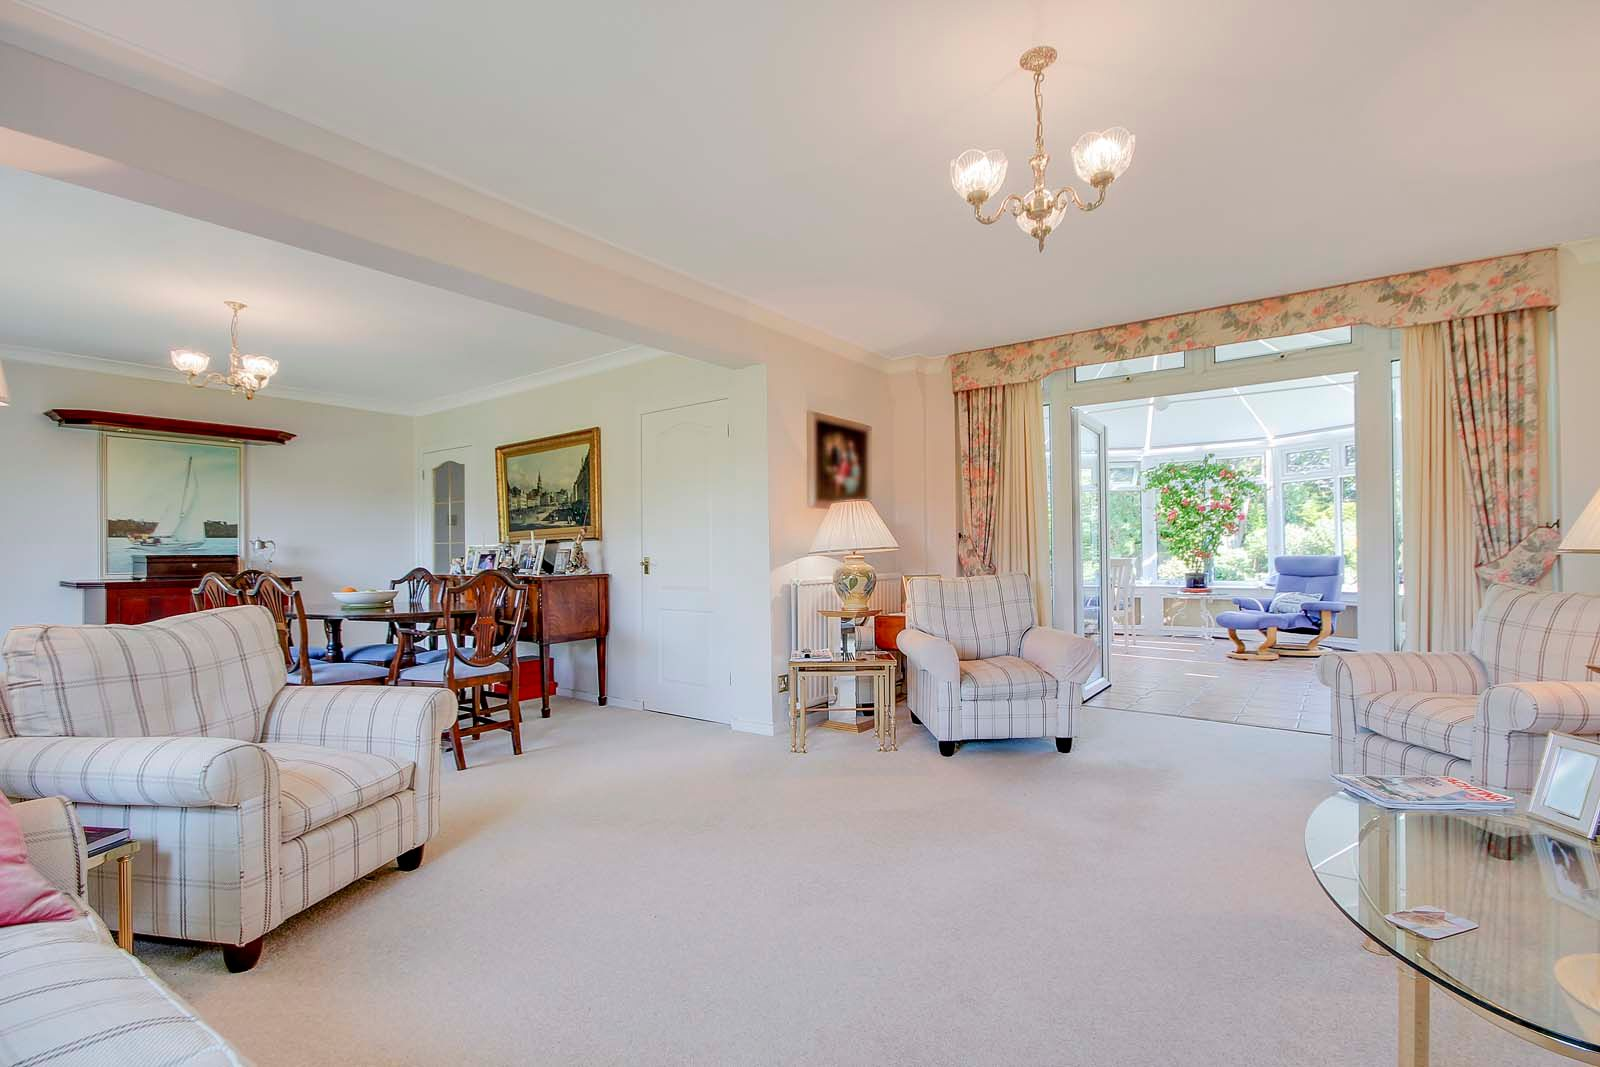 5 bed House for sale in The Willowhayne, East Preston - Sitting room (Property Image 3)